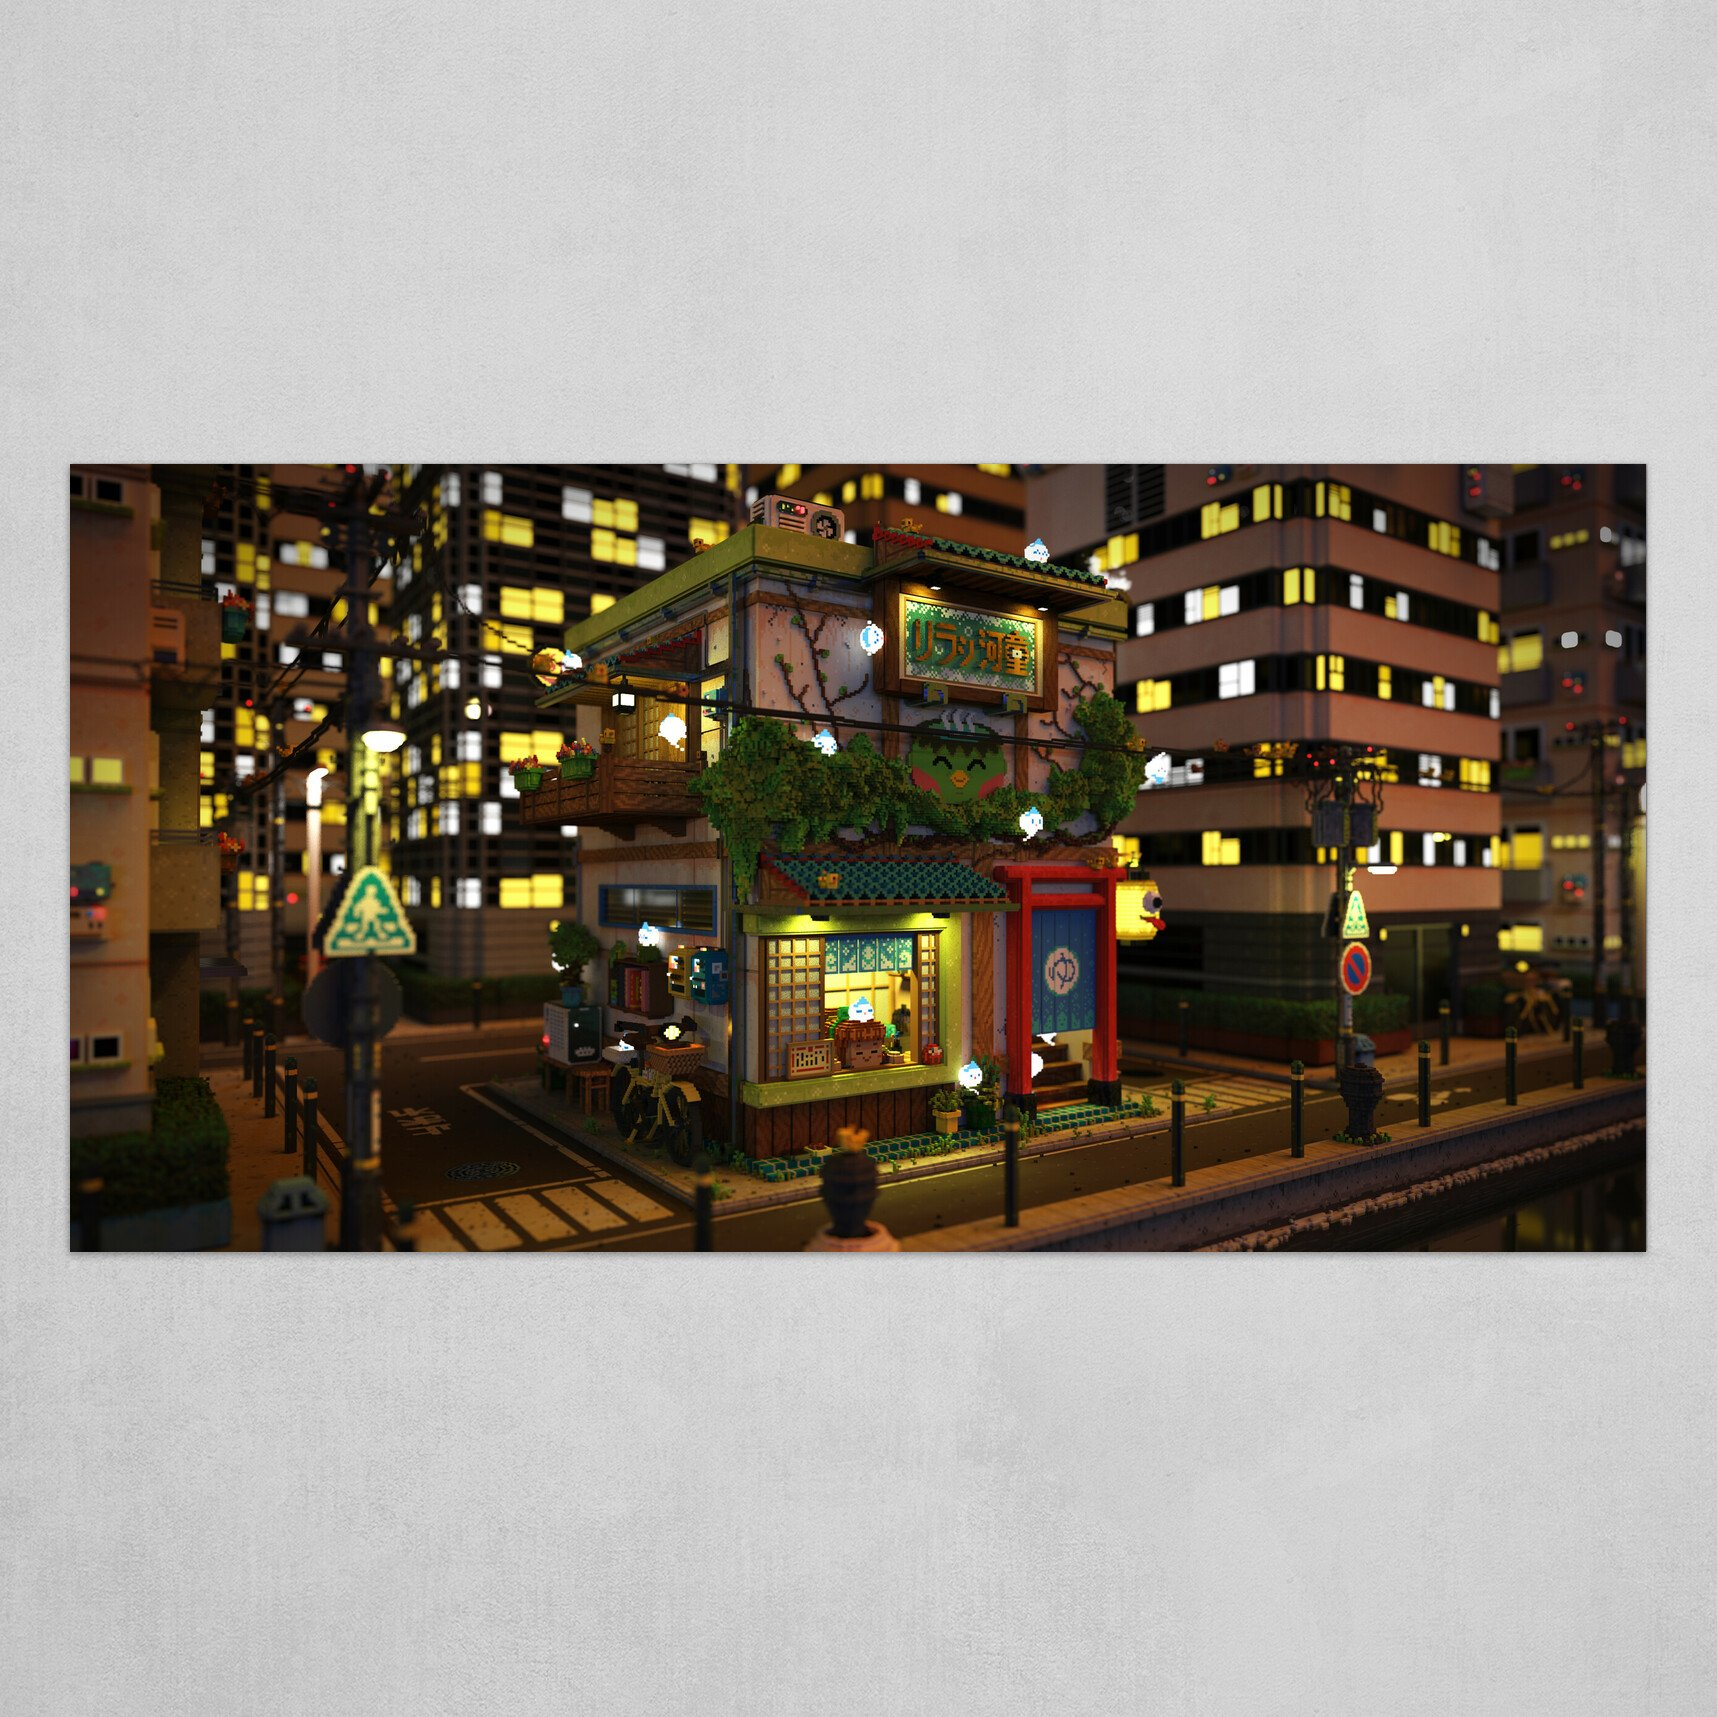 Voxel - Onsen Street - Night 02